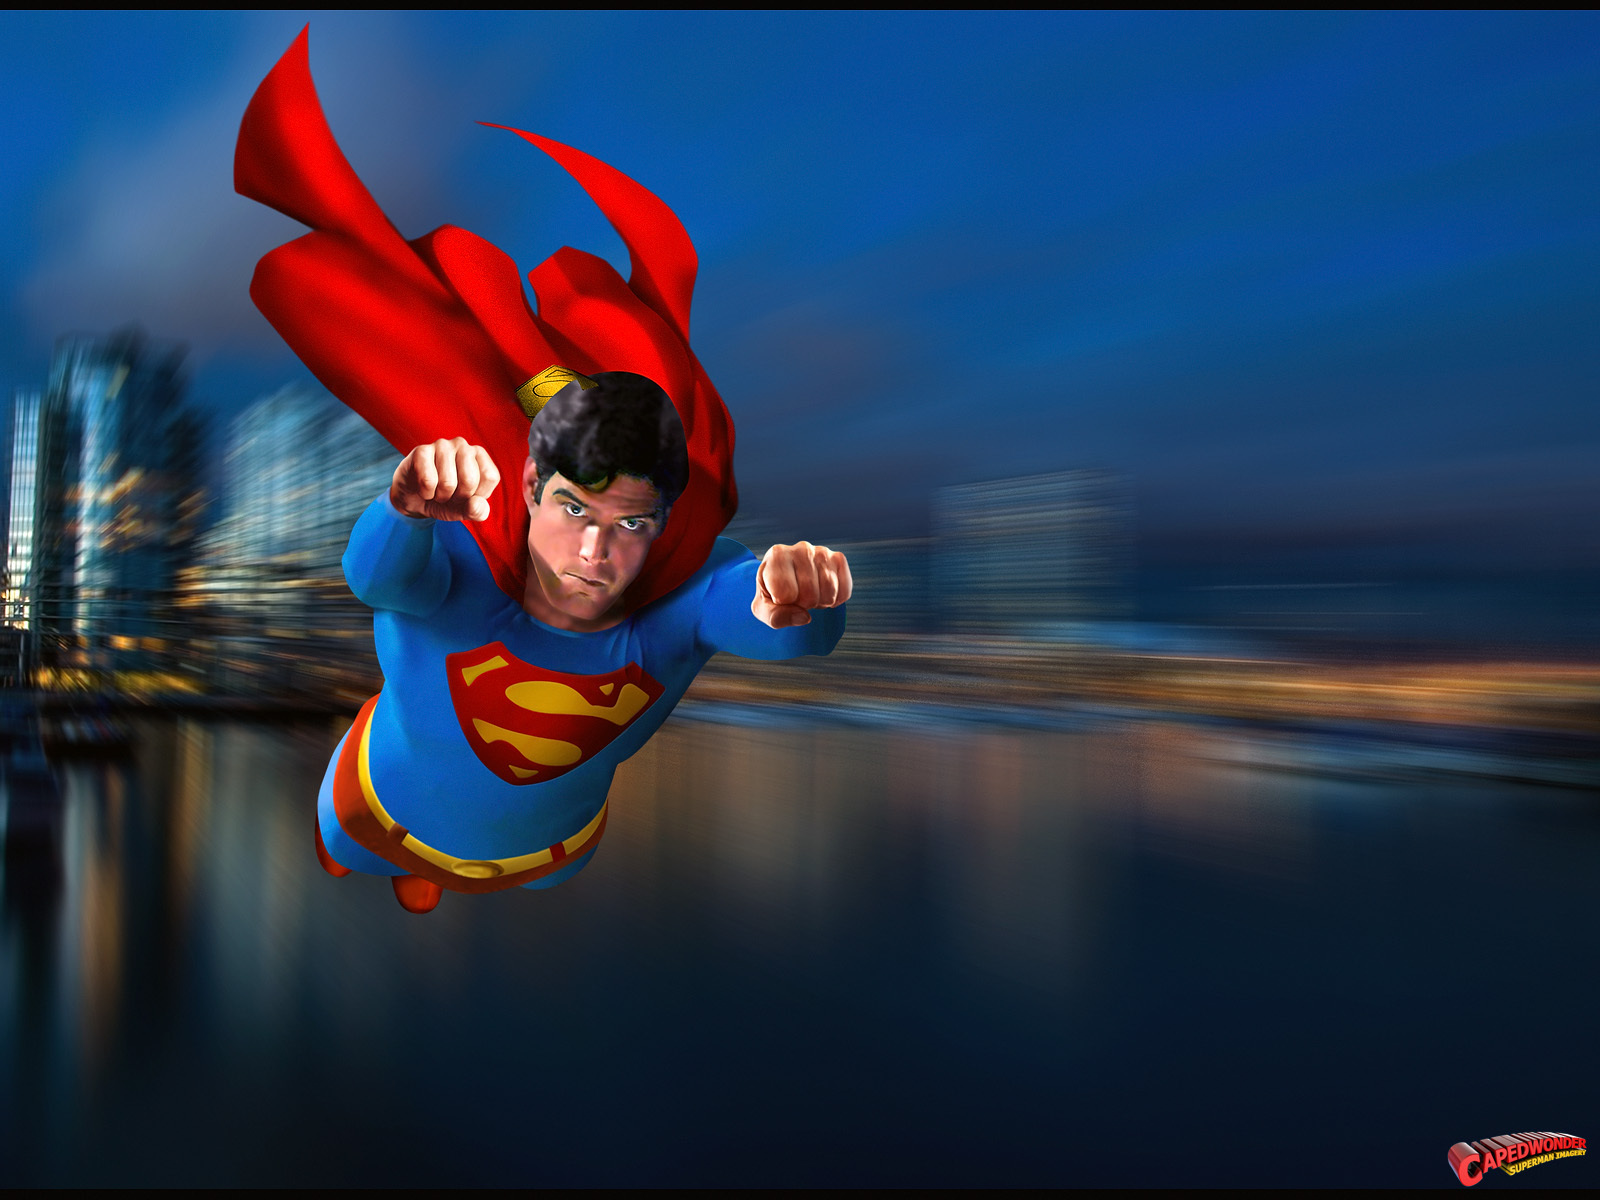 Superman (The Movie) images Superman HD wallpaper and background photos